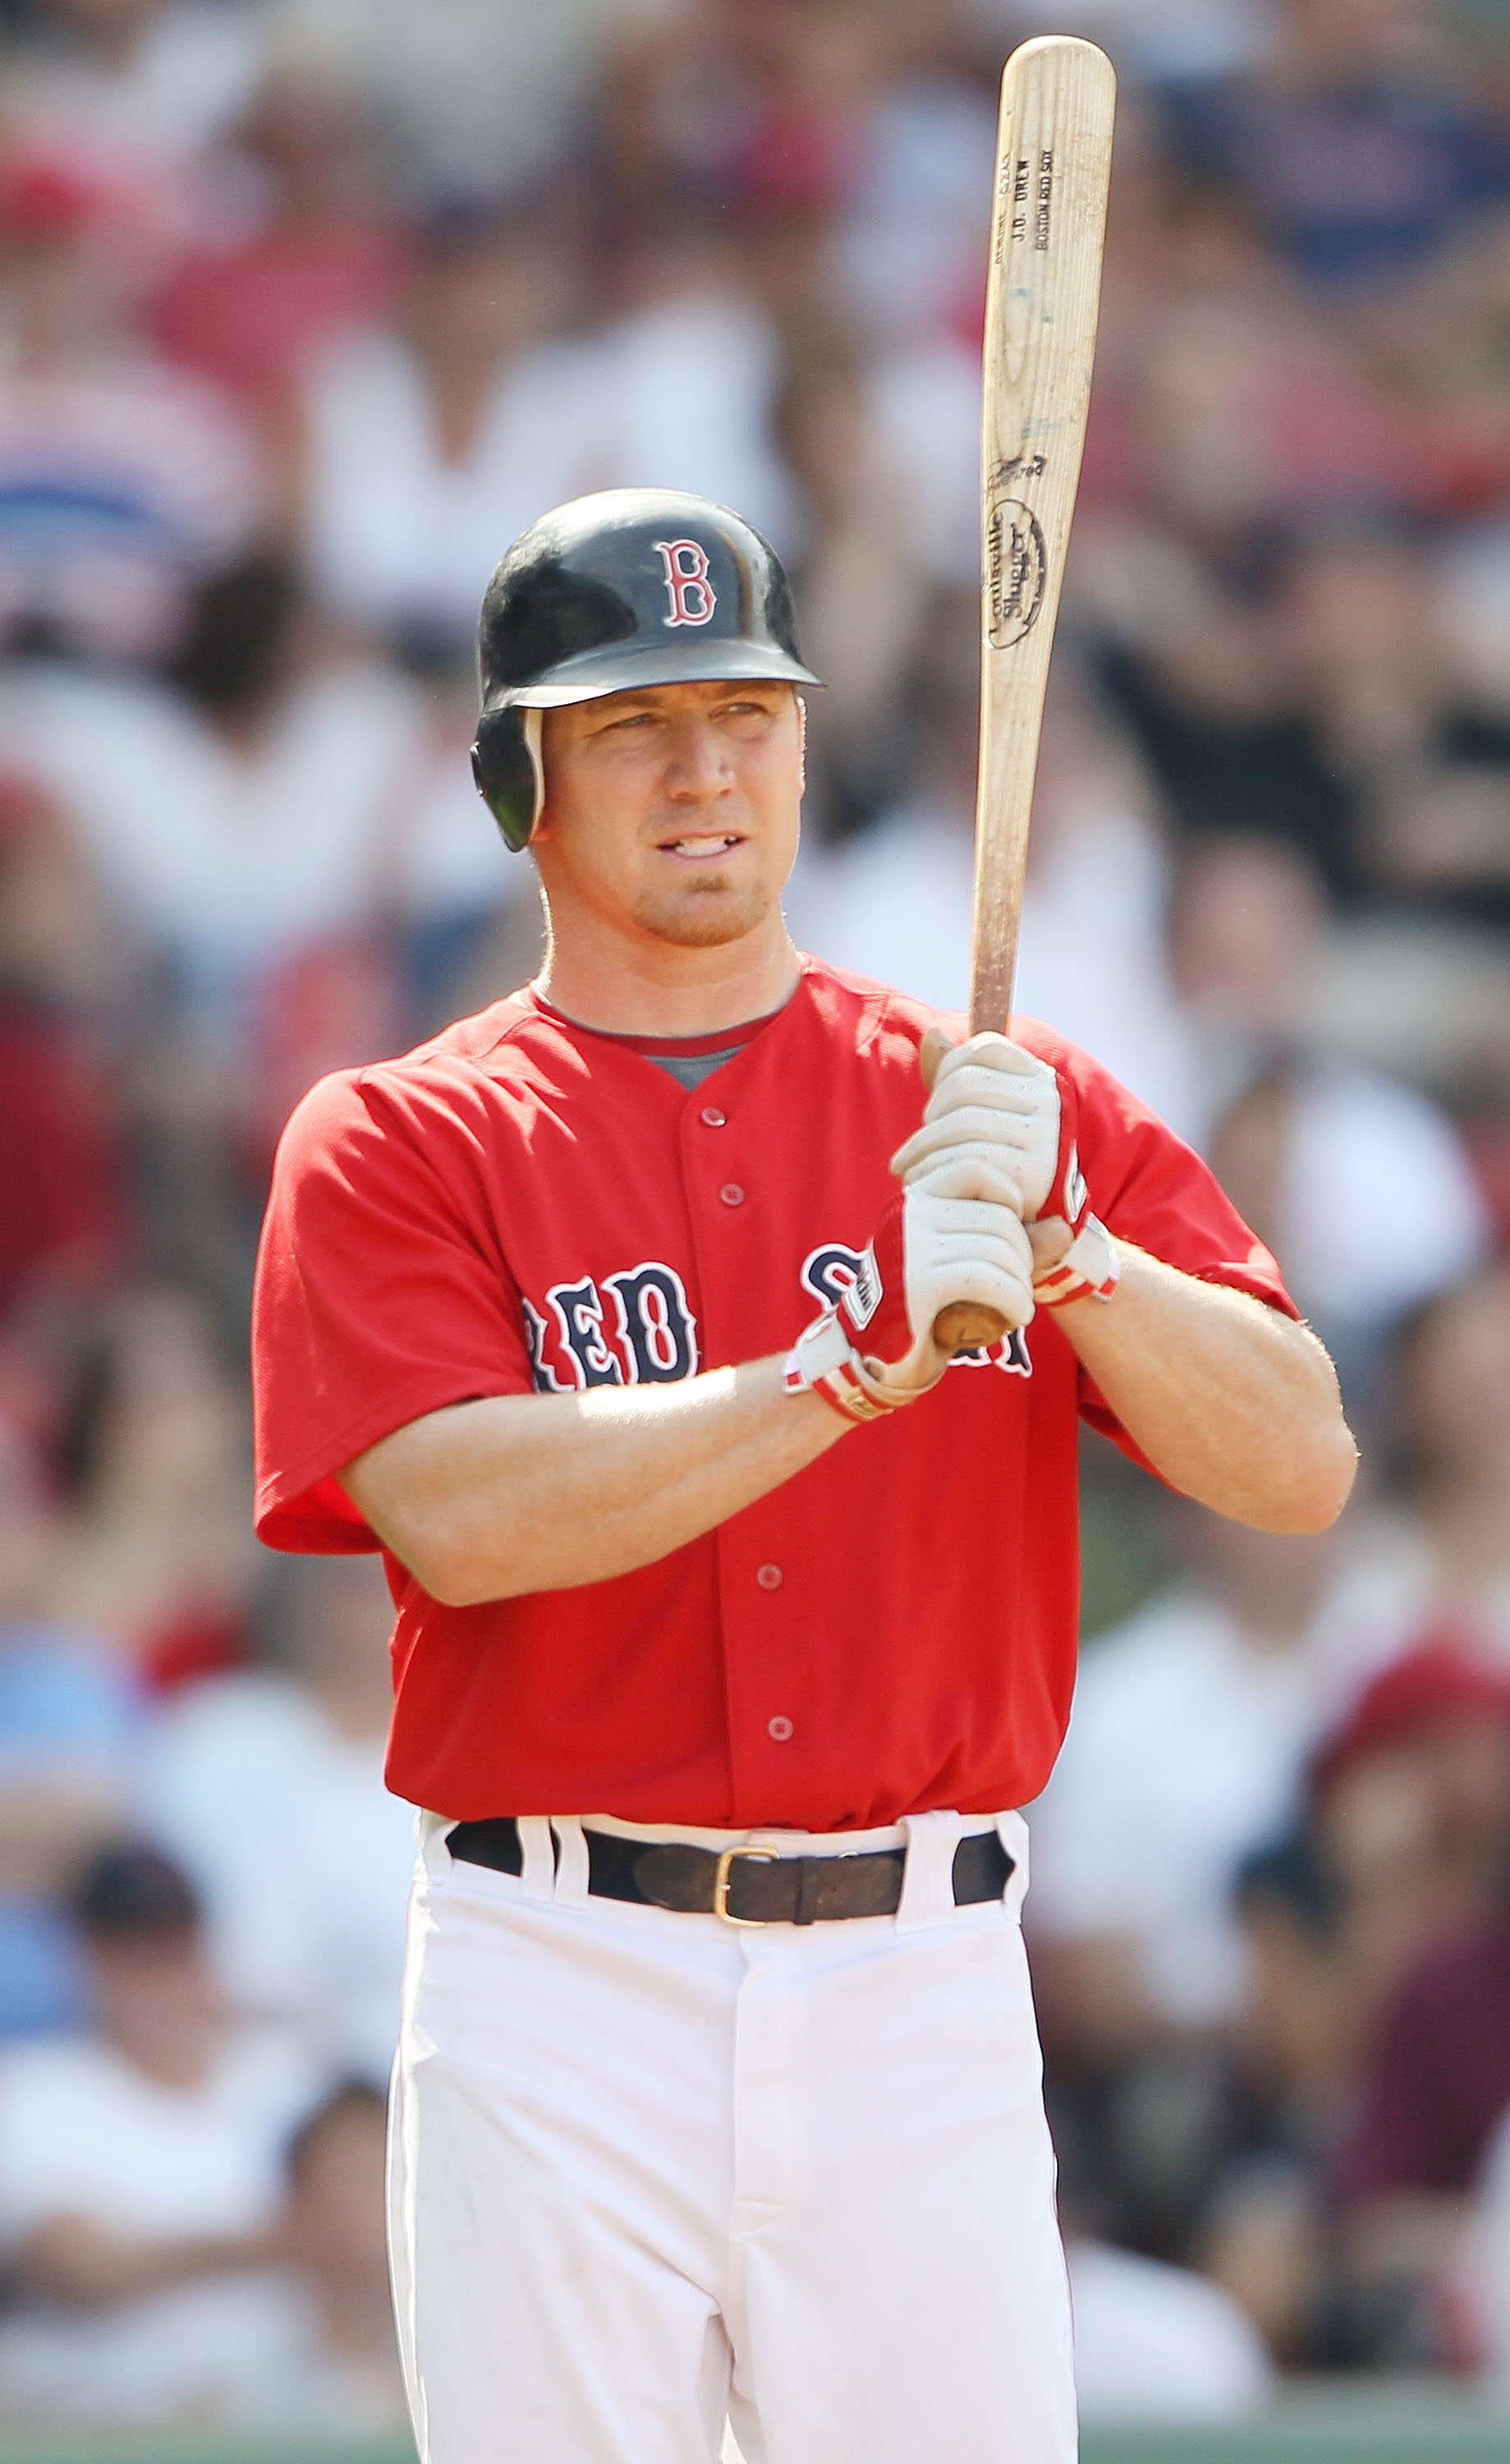 BOSTON - JULY 04:  J.D. Drew #7 of the Boston Red Sox waits on deck against the Baltimore Orioles on July 4, 2010 at Fenway Park in Boston, Massachusetts. The Orioles defeated the Red Sox 6-1.  (Photo by Elsa/Getty Images)